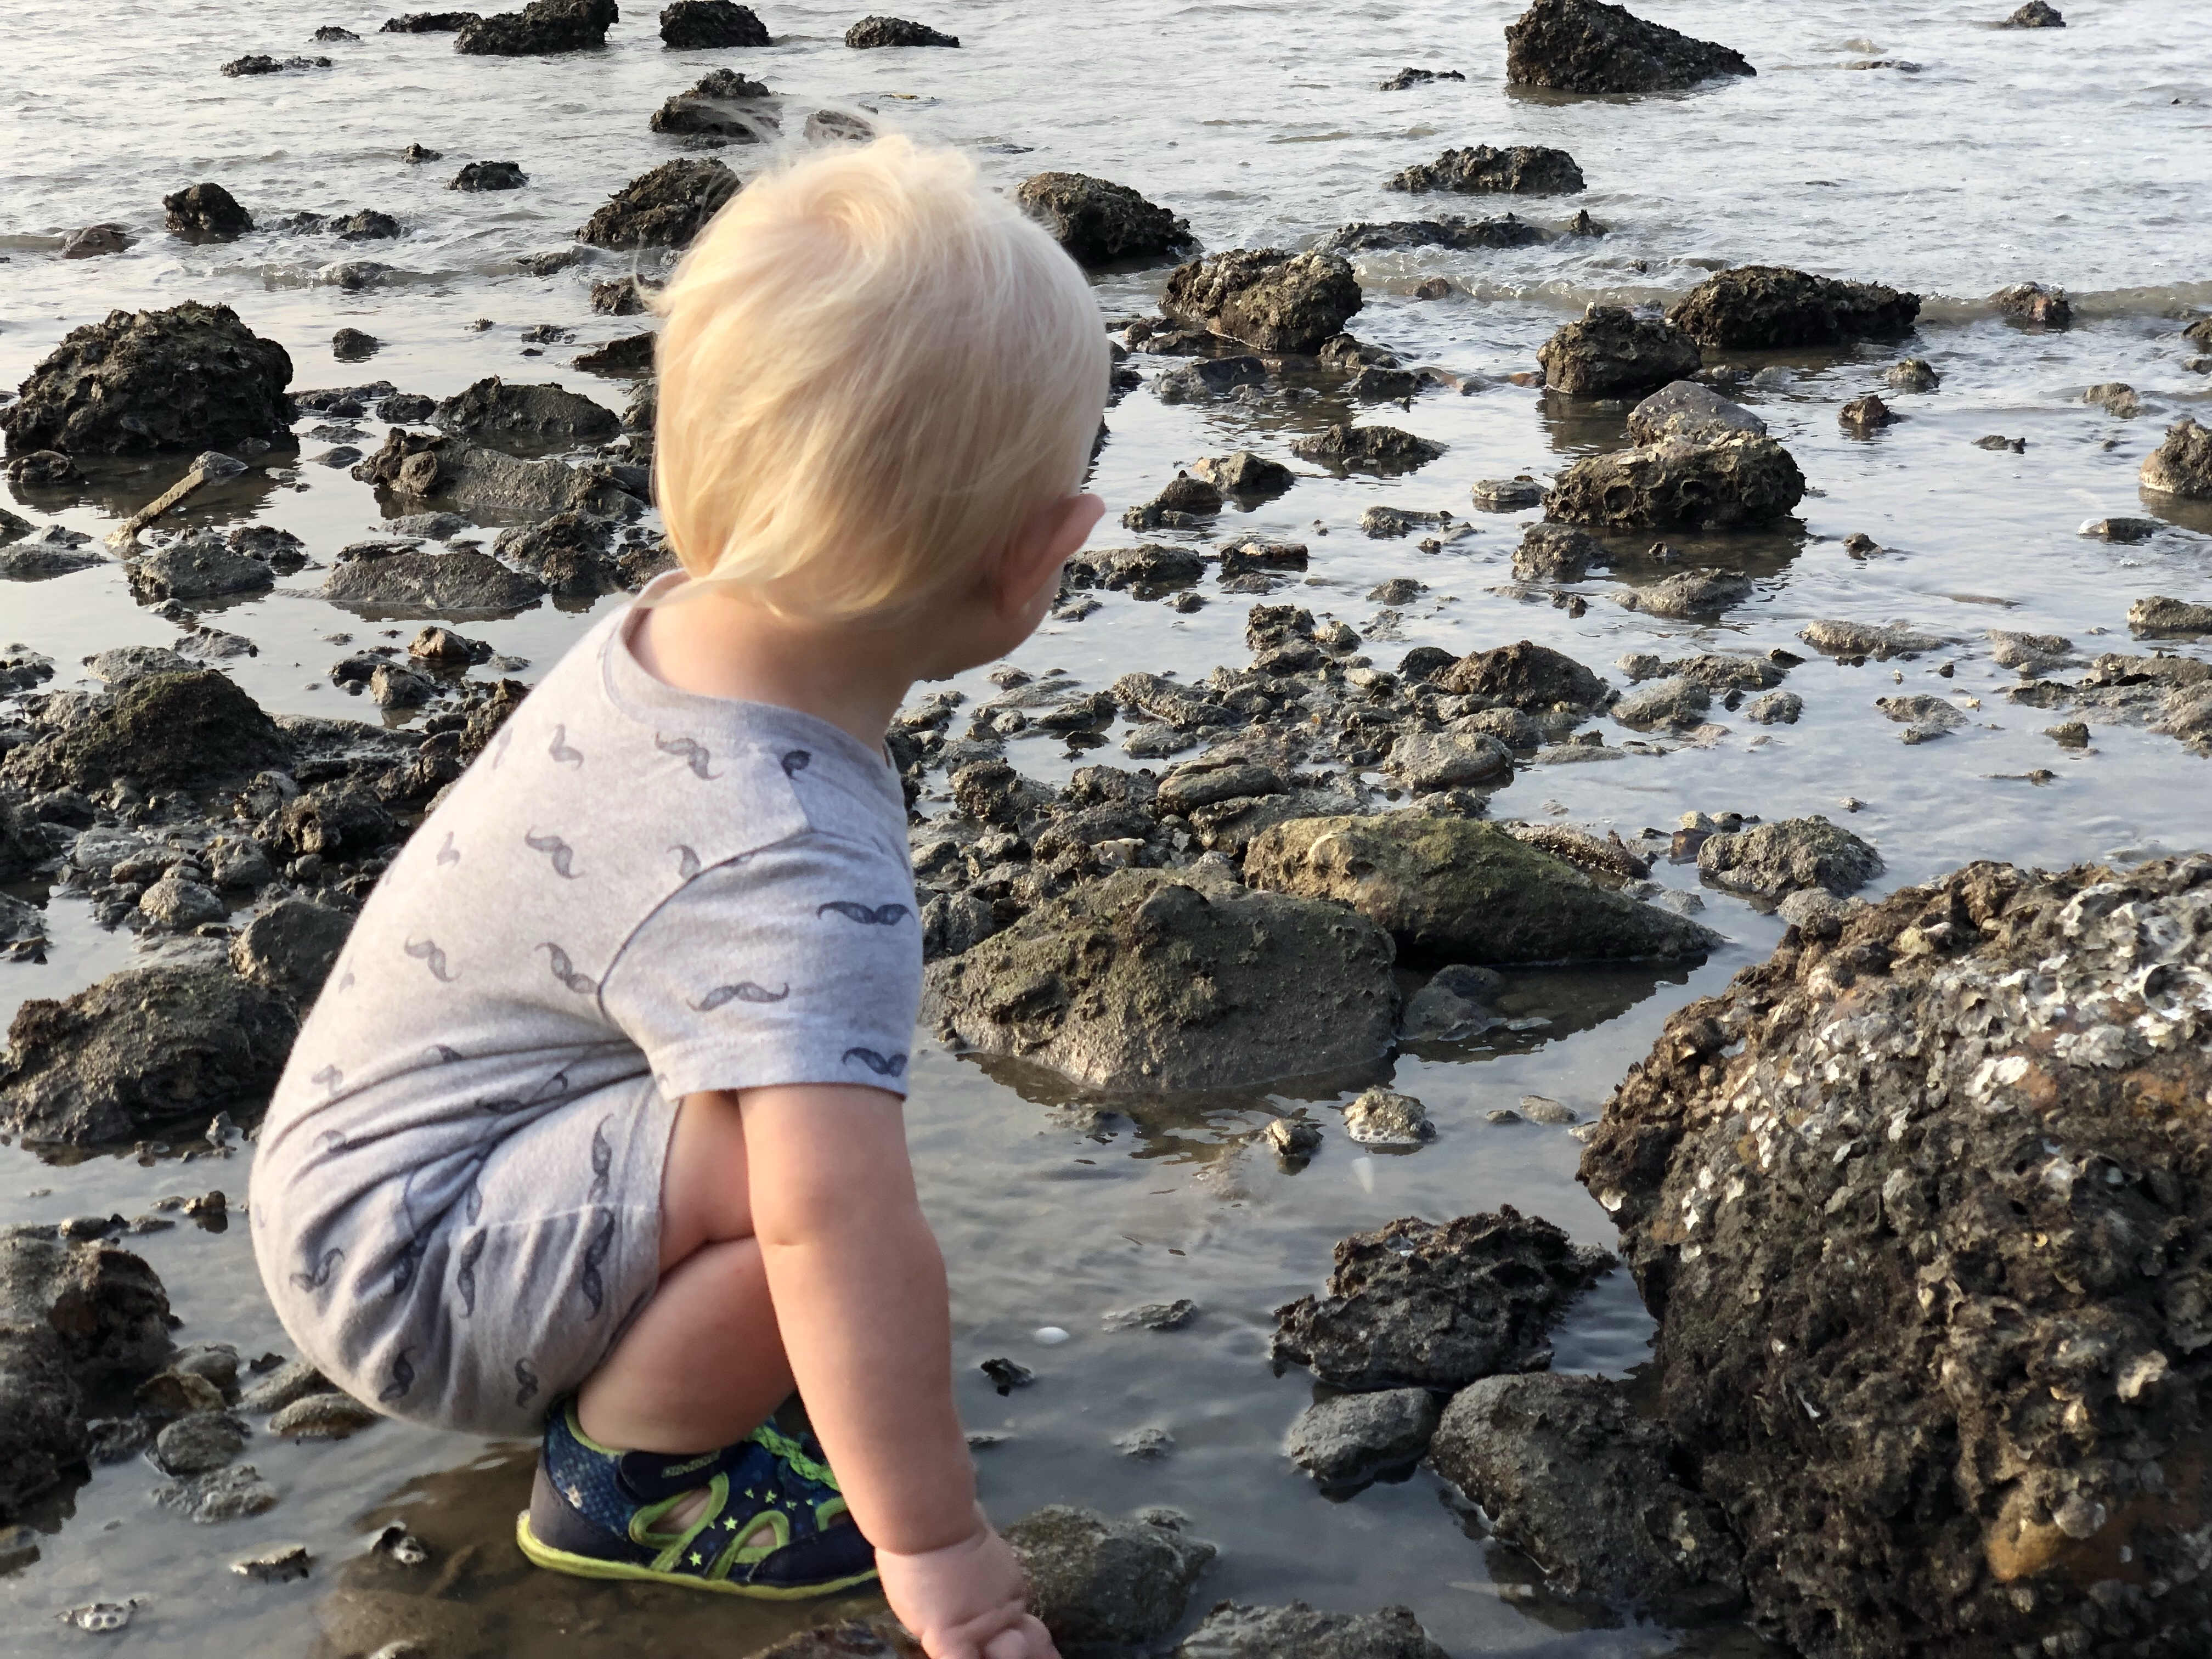 explore tide pools | questions to ask yourself when studying tide pools | tide pools | Hong Kong | children science | teaching resources | Homeschooling | Unschooling | sealife science lessons | This Indulgent Life